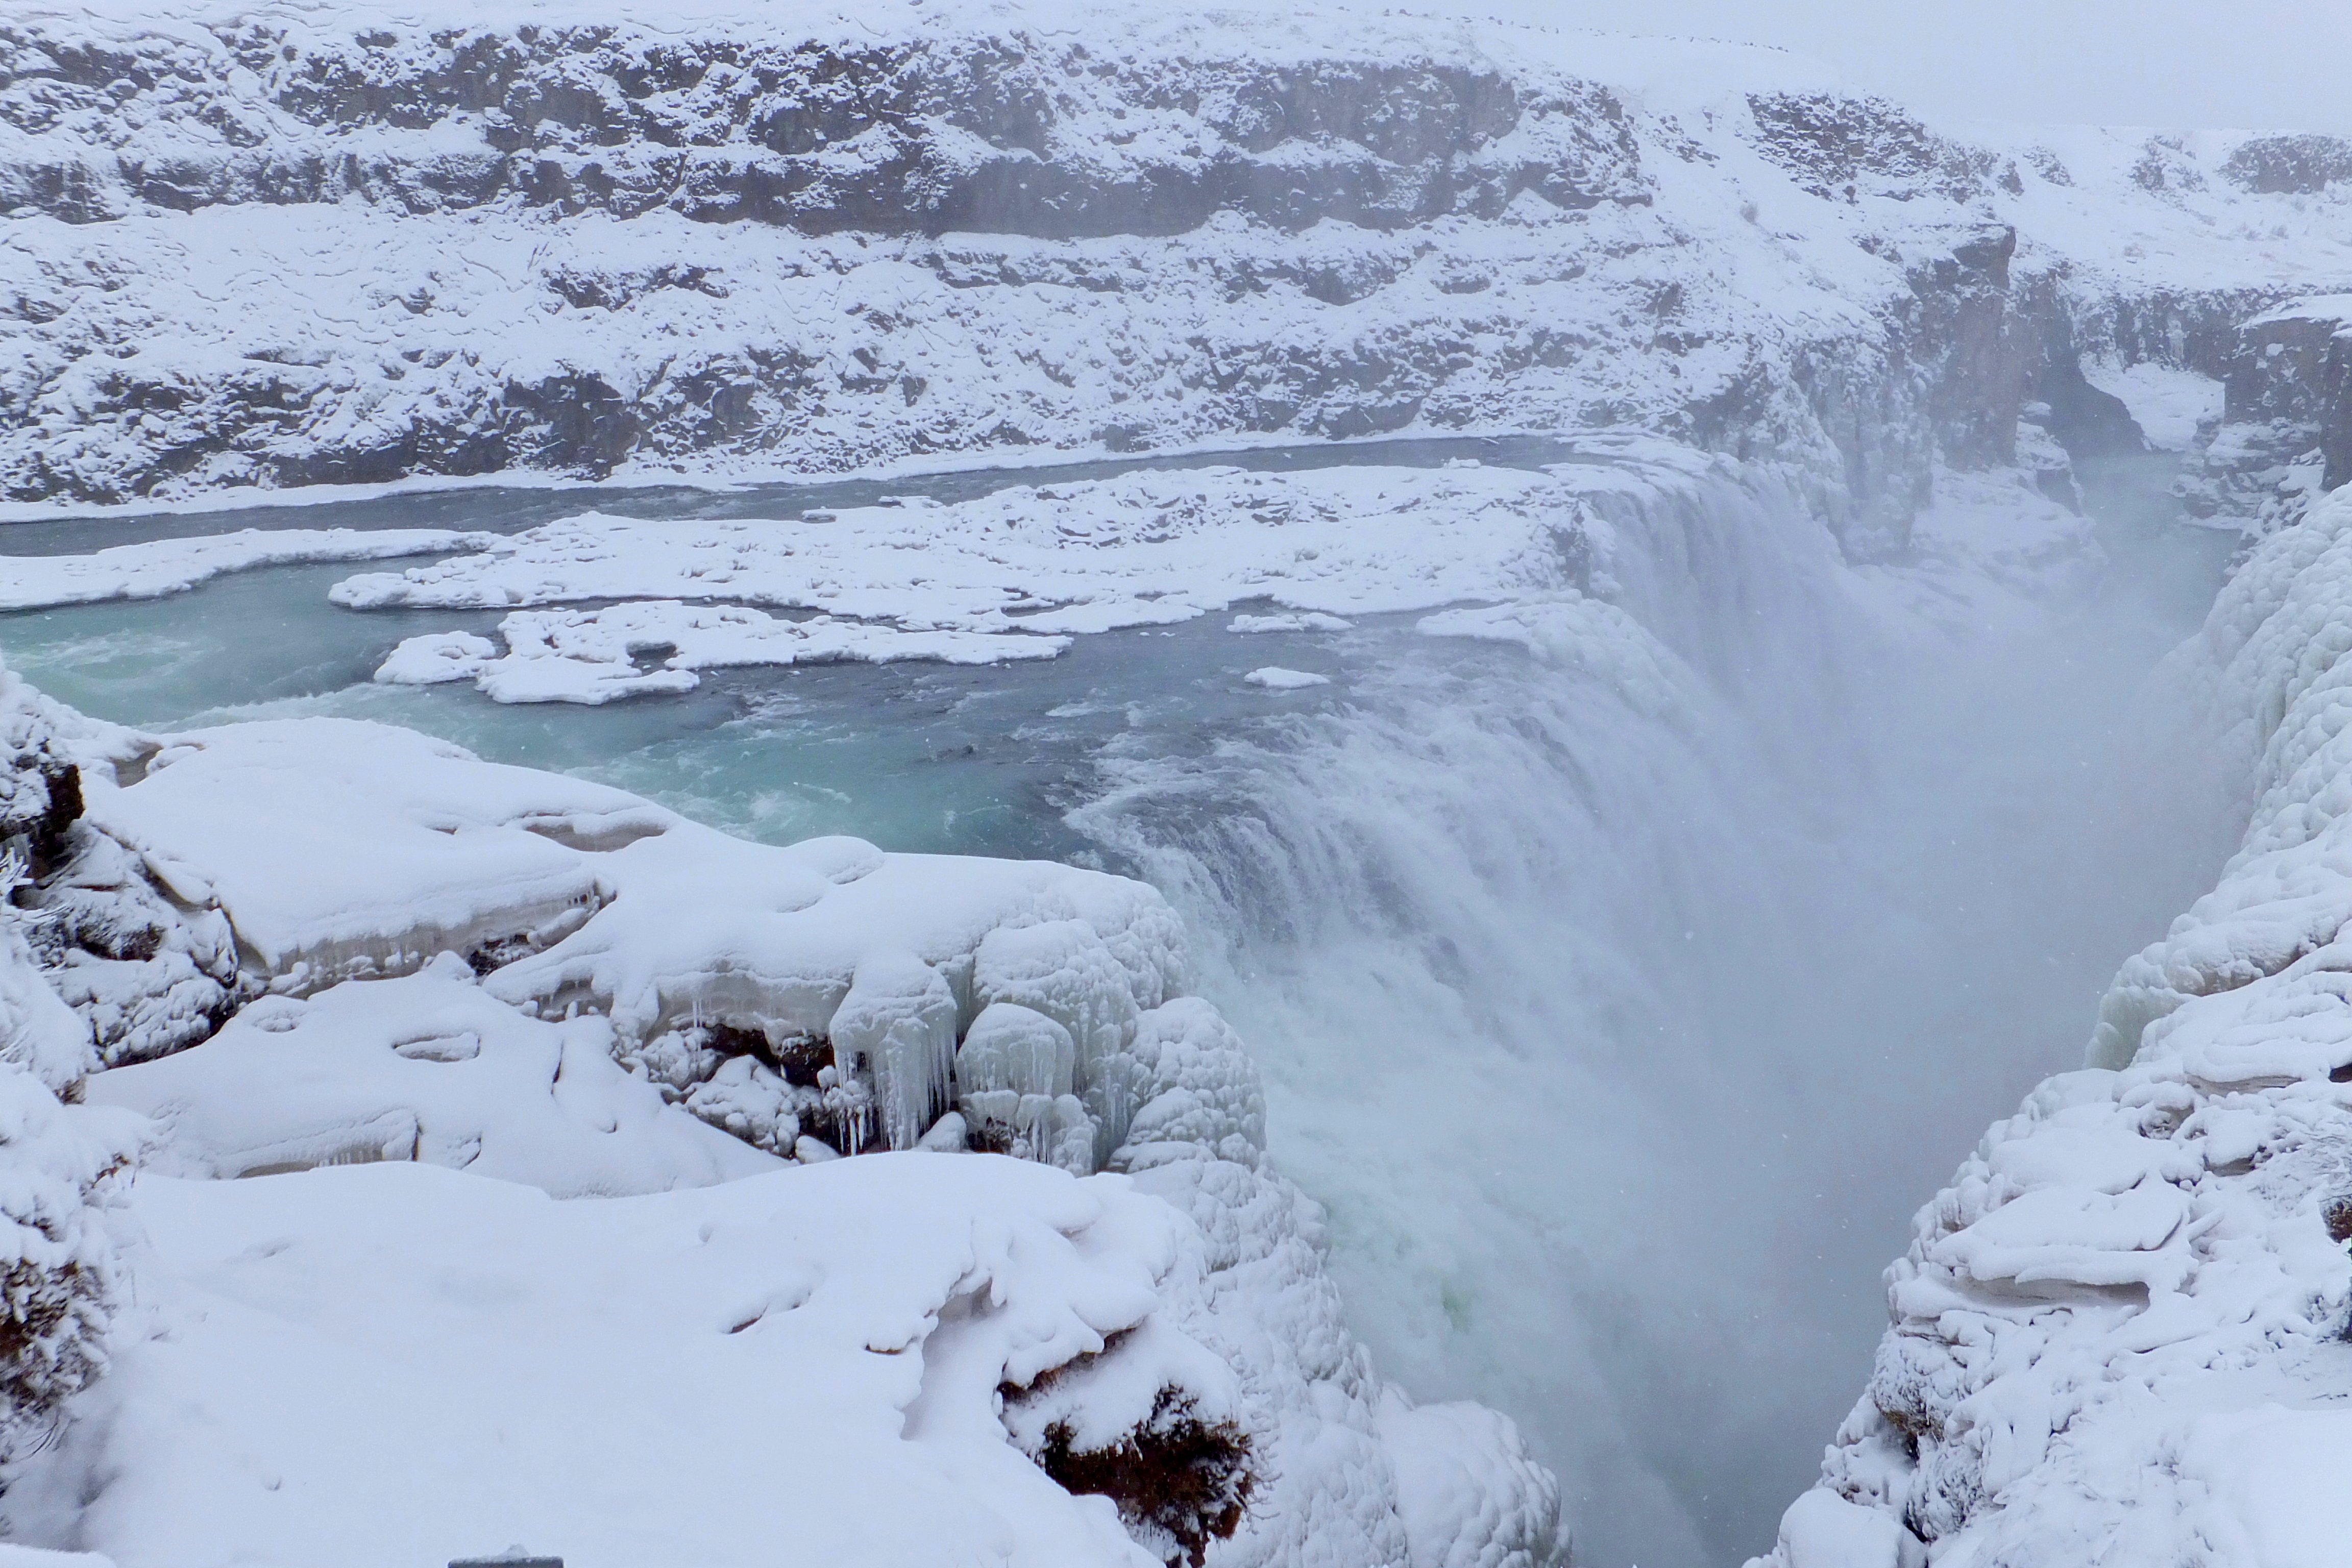 THE MIGHTY GULLFOSS NEARLY BLEW ME AWAY